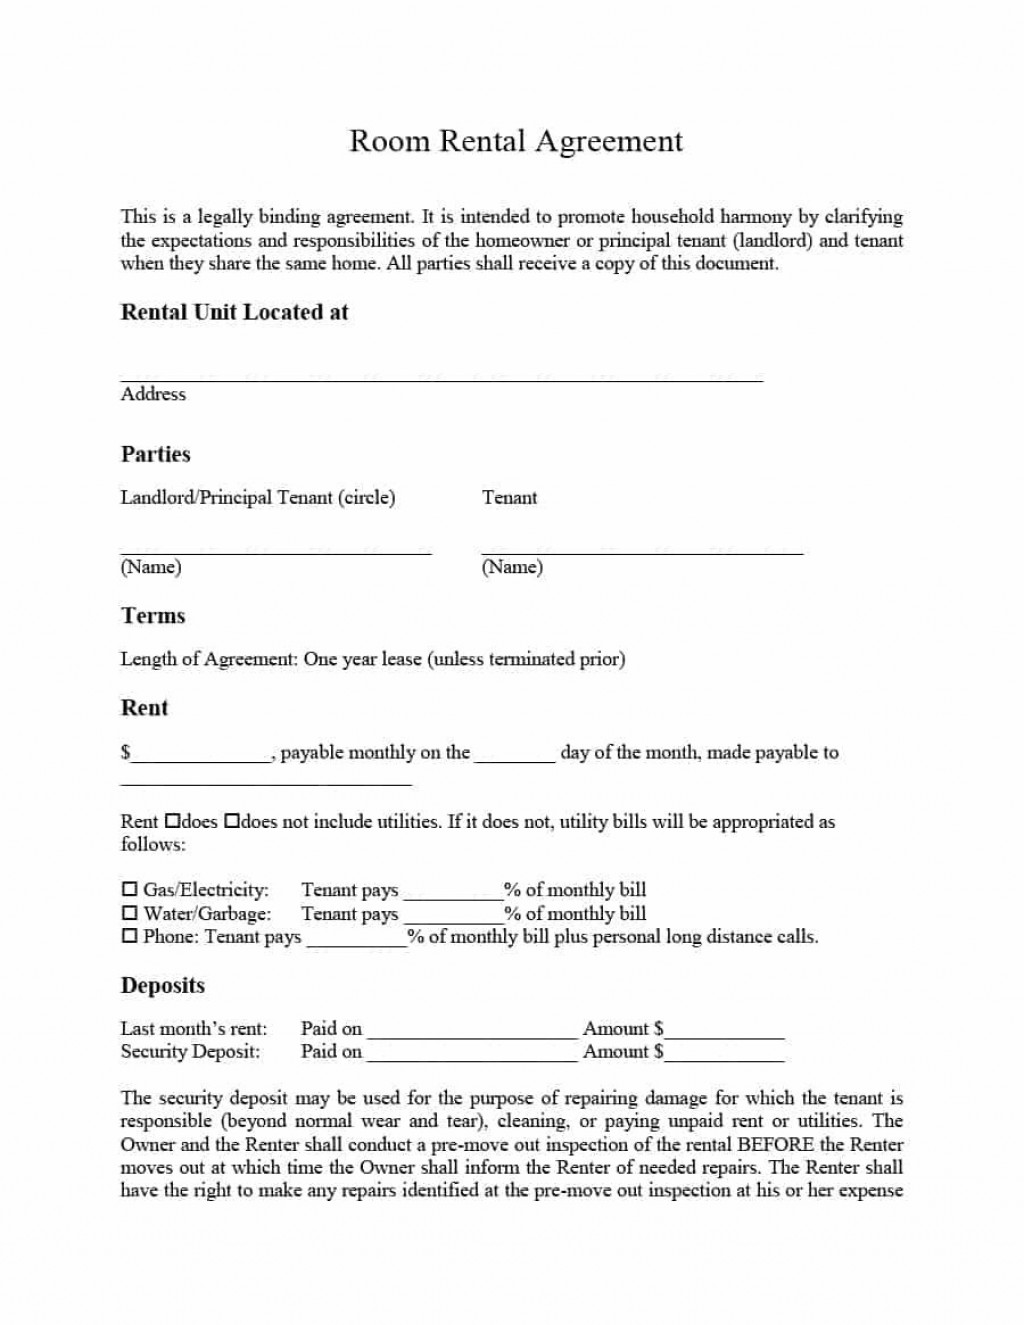 003 Impressive Rent Lease Agreement Format High Resolution  Shop Rental In English Tamil Simple FormLarge